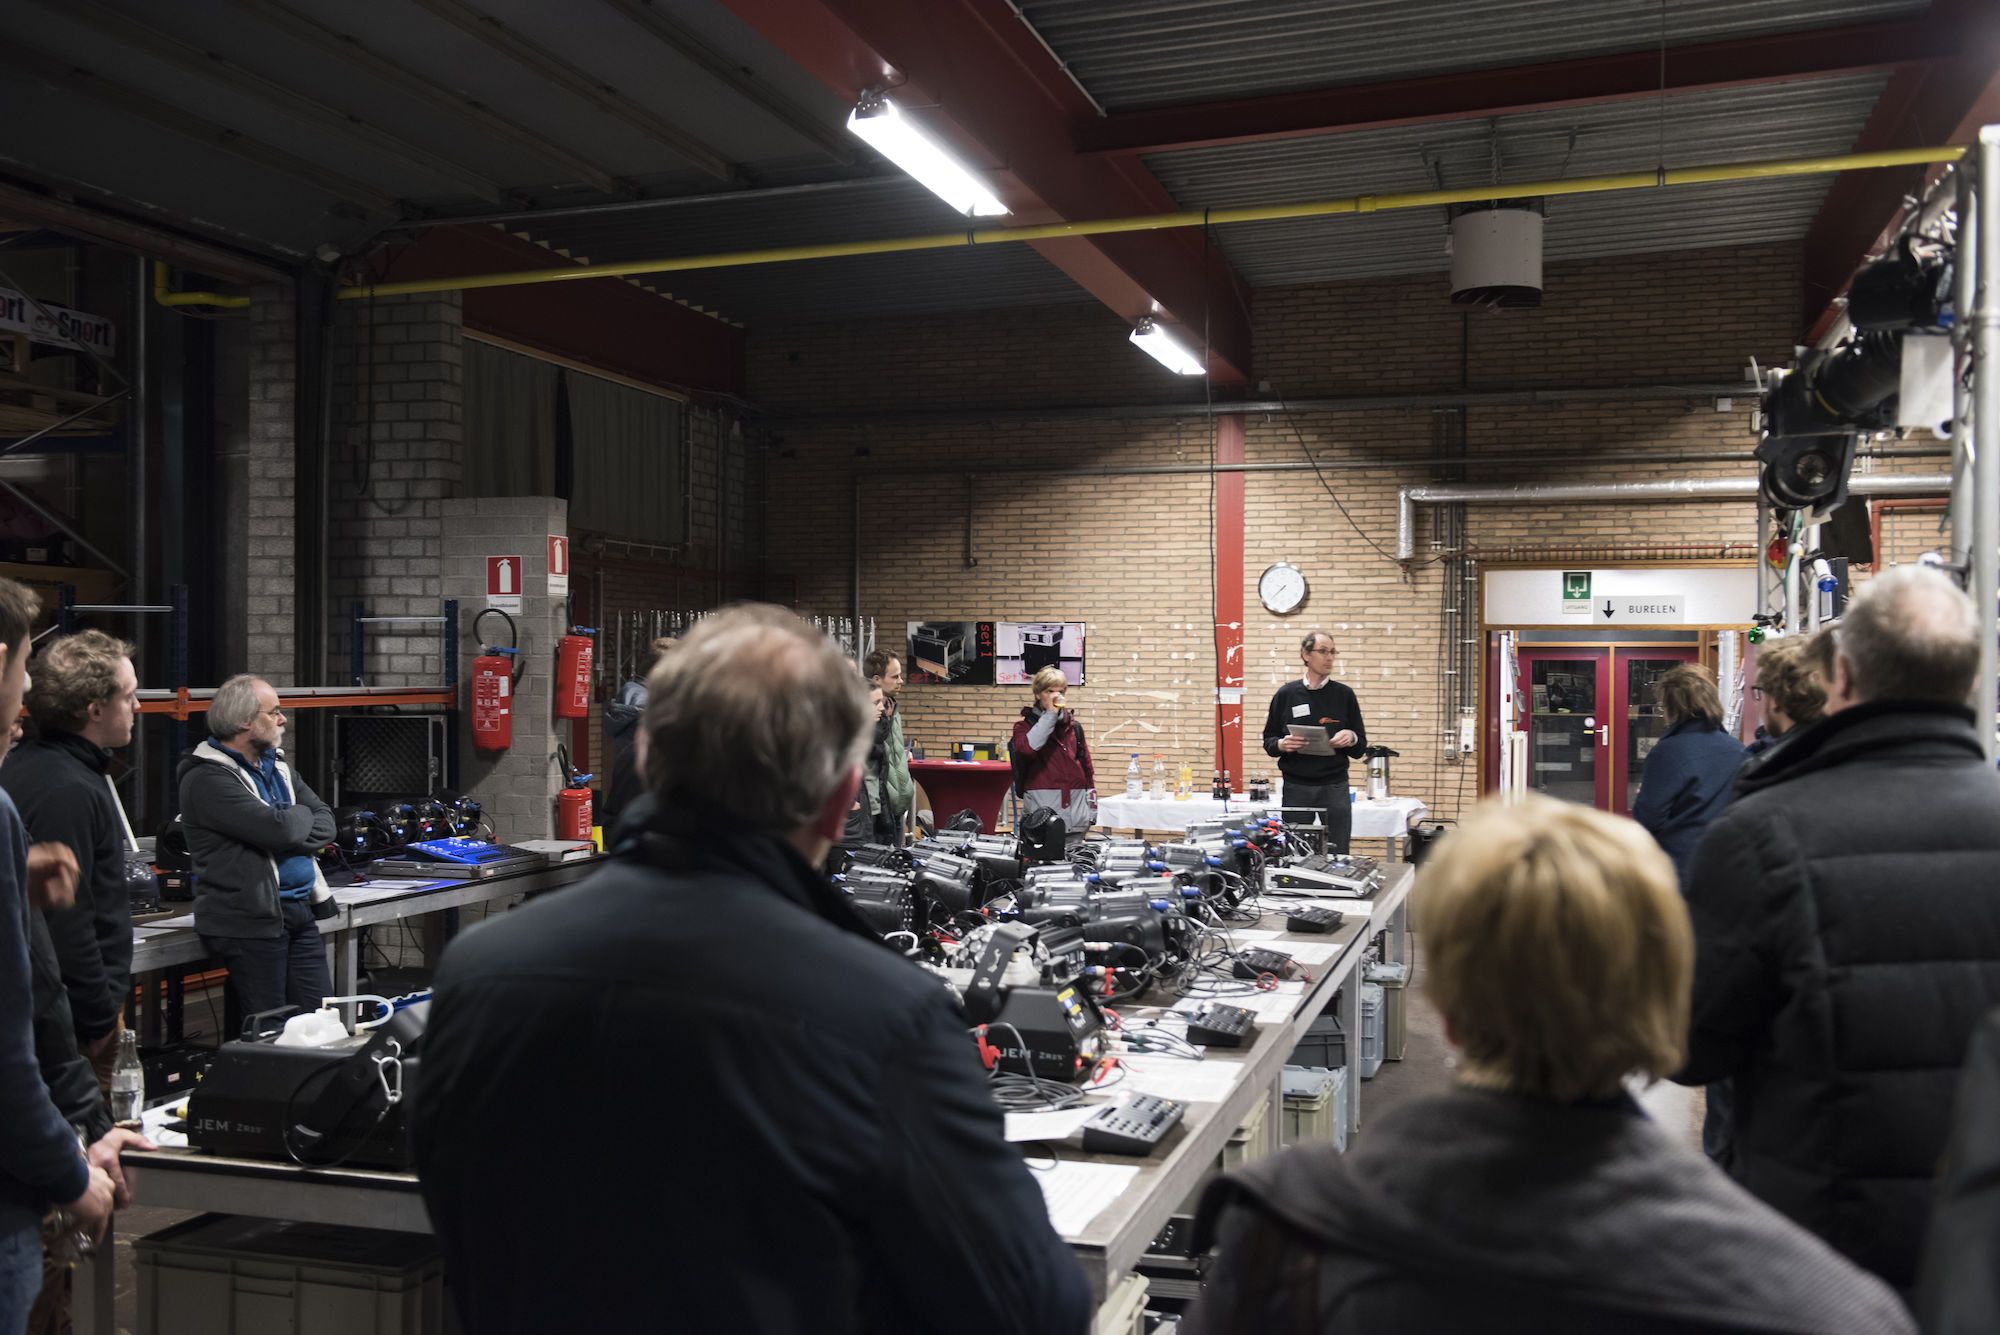 180208-uitleendienst-workshop-dmx-00001.jpg